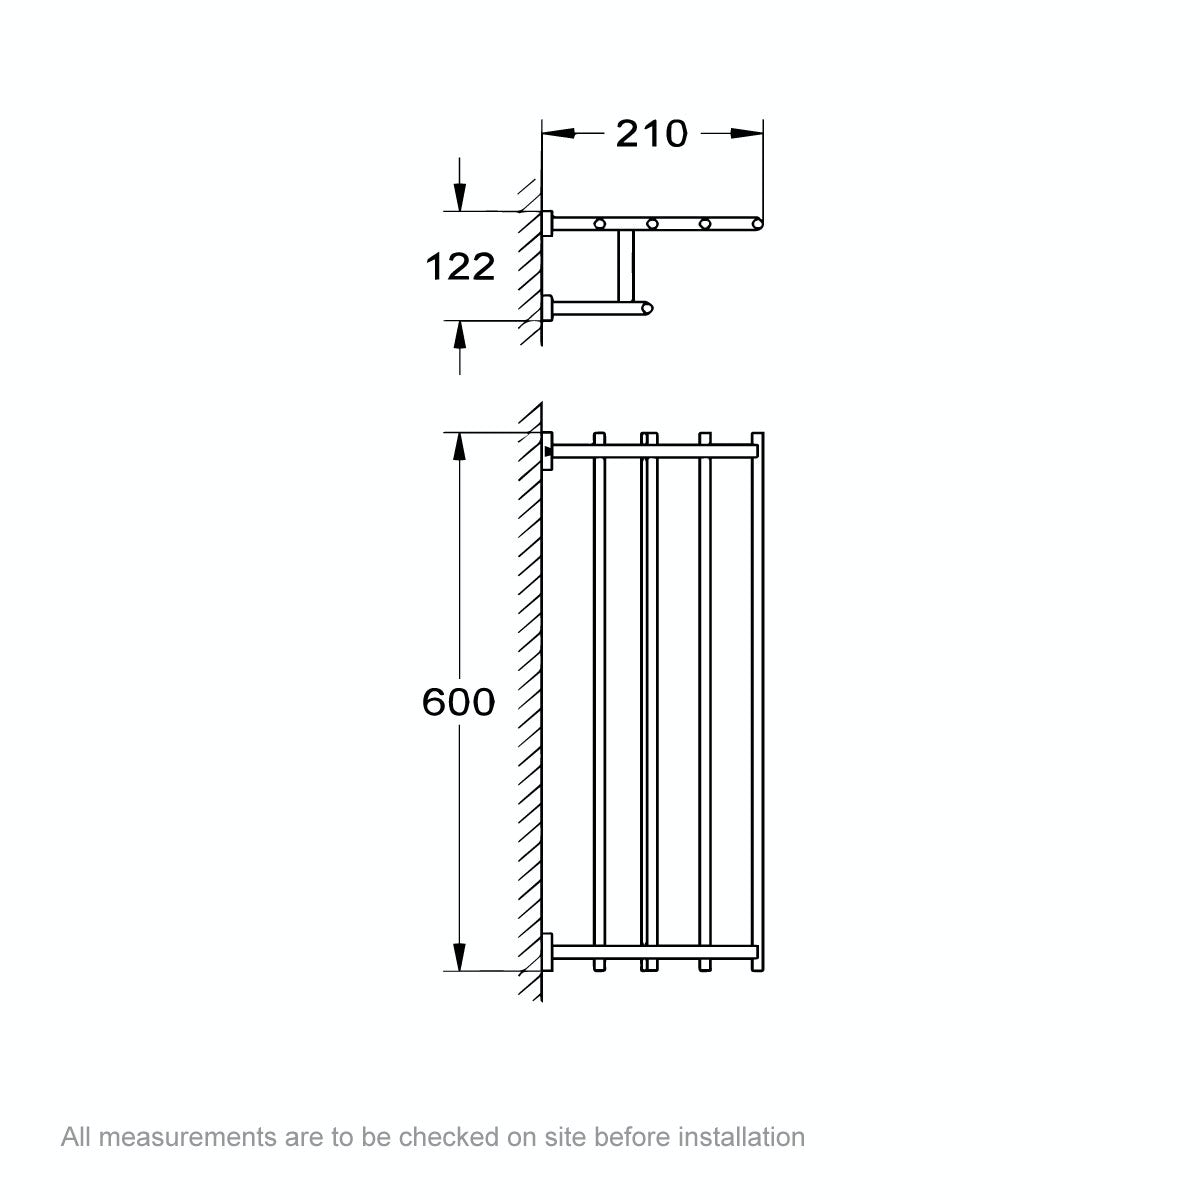 Dimensions for Grohe Essentials Cube multi-towel rail 600 mm